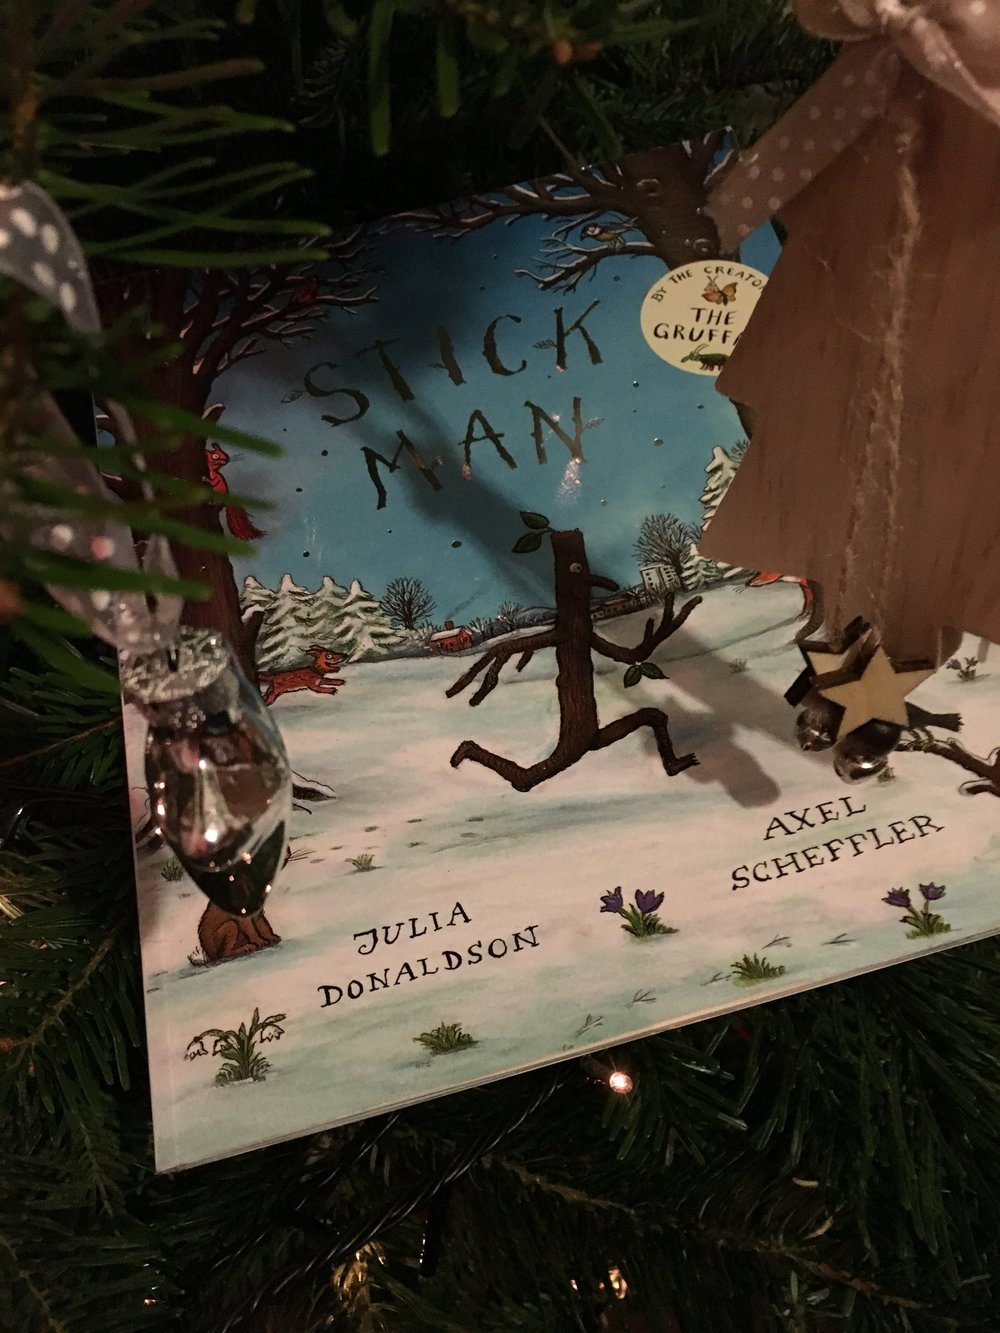 Stick Man - By Julia Donaldson. No one writes children's books like Julia. Now a short film, this tale is all about a Daddy Stick Man trying to get home to his family at Christmas. Perfect rhyming prose for little ones this Christmas.